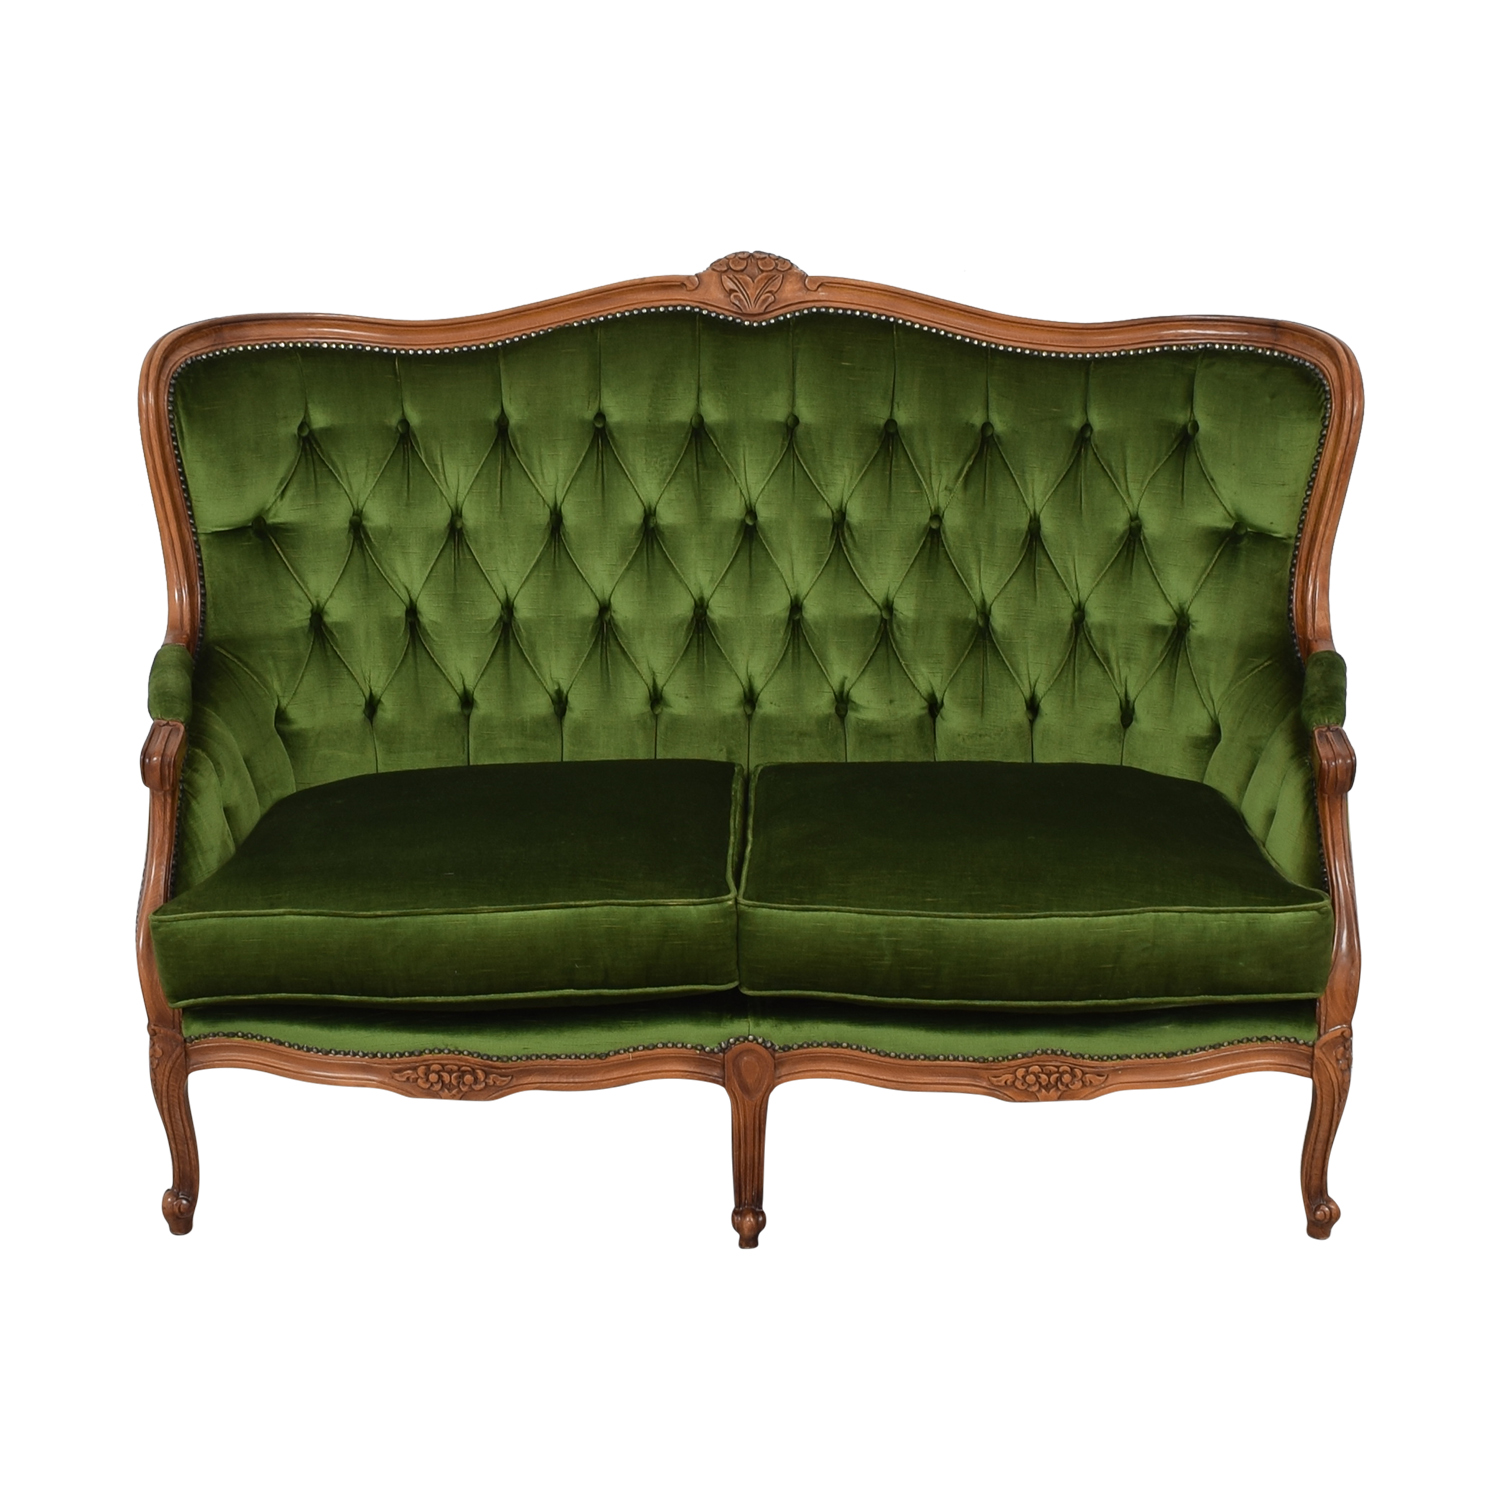 Marvelous 74 Off Biedermeier Biedermeier Green Cabriole Sofa Sofas Ncnpc Chair Design For Home Ncnpcorg